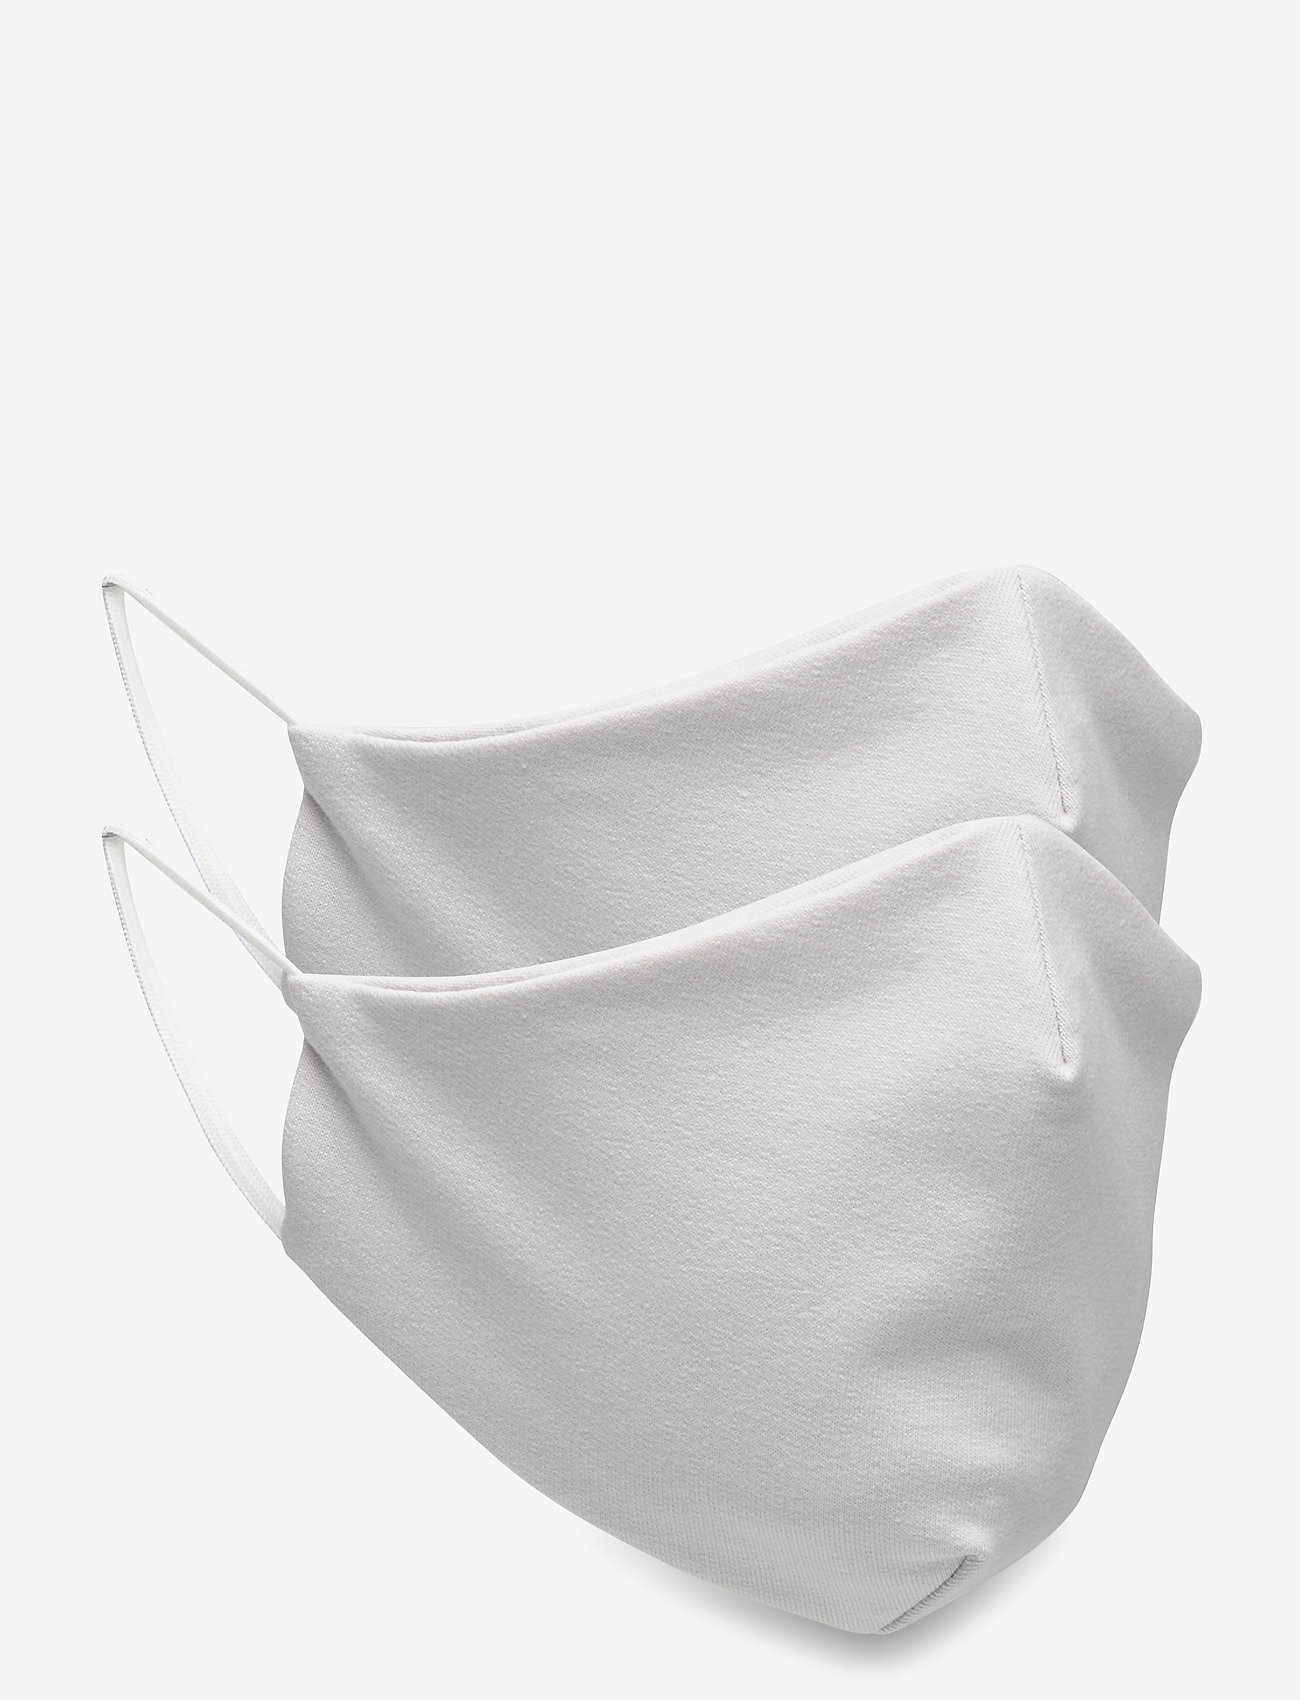 Reusable Face Mask 2-pack (Light Grey) (12.95 €) - ORAS24 WVAIV